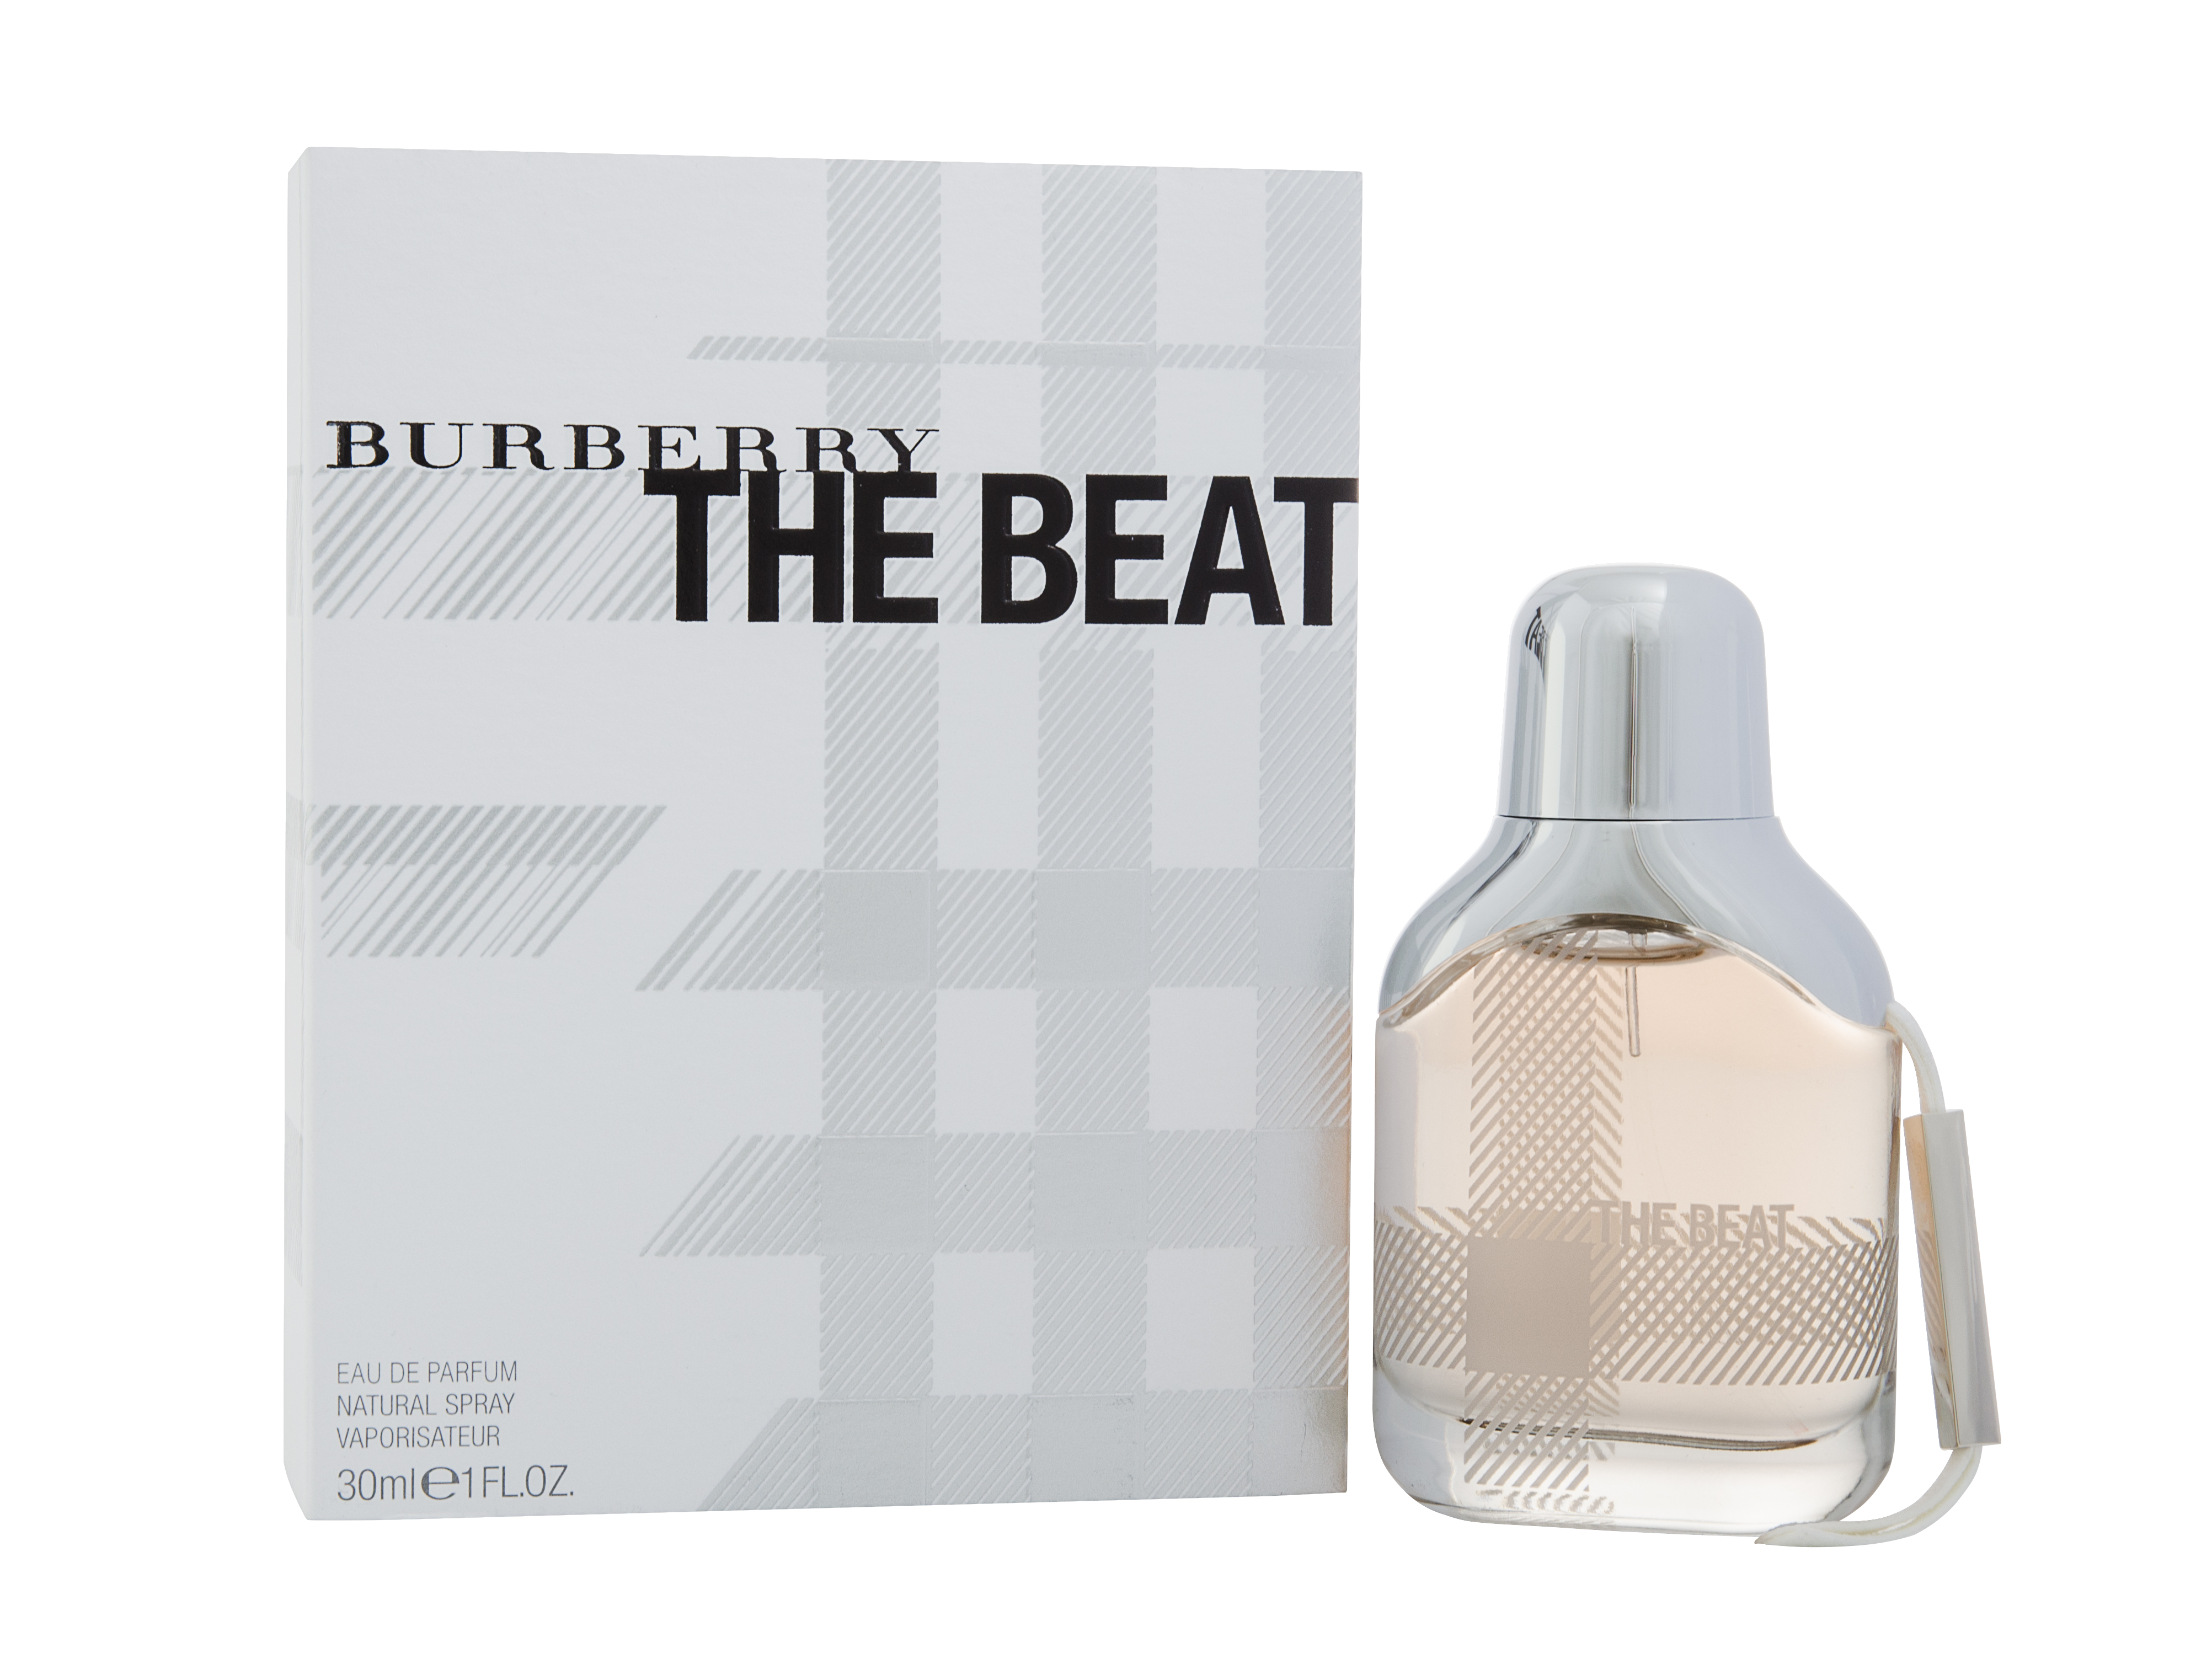 Burberry The Beat Eau de Parfum 30ml